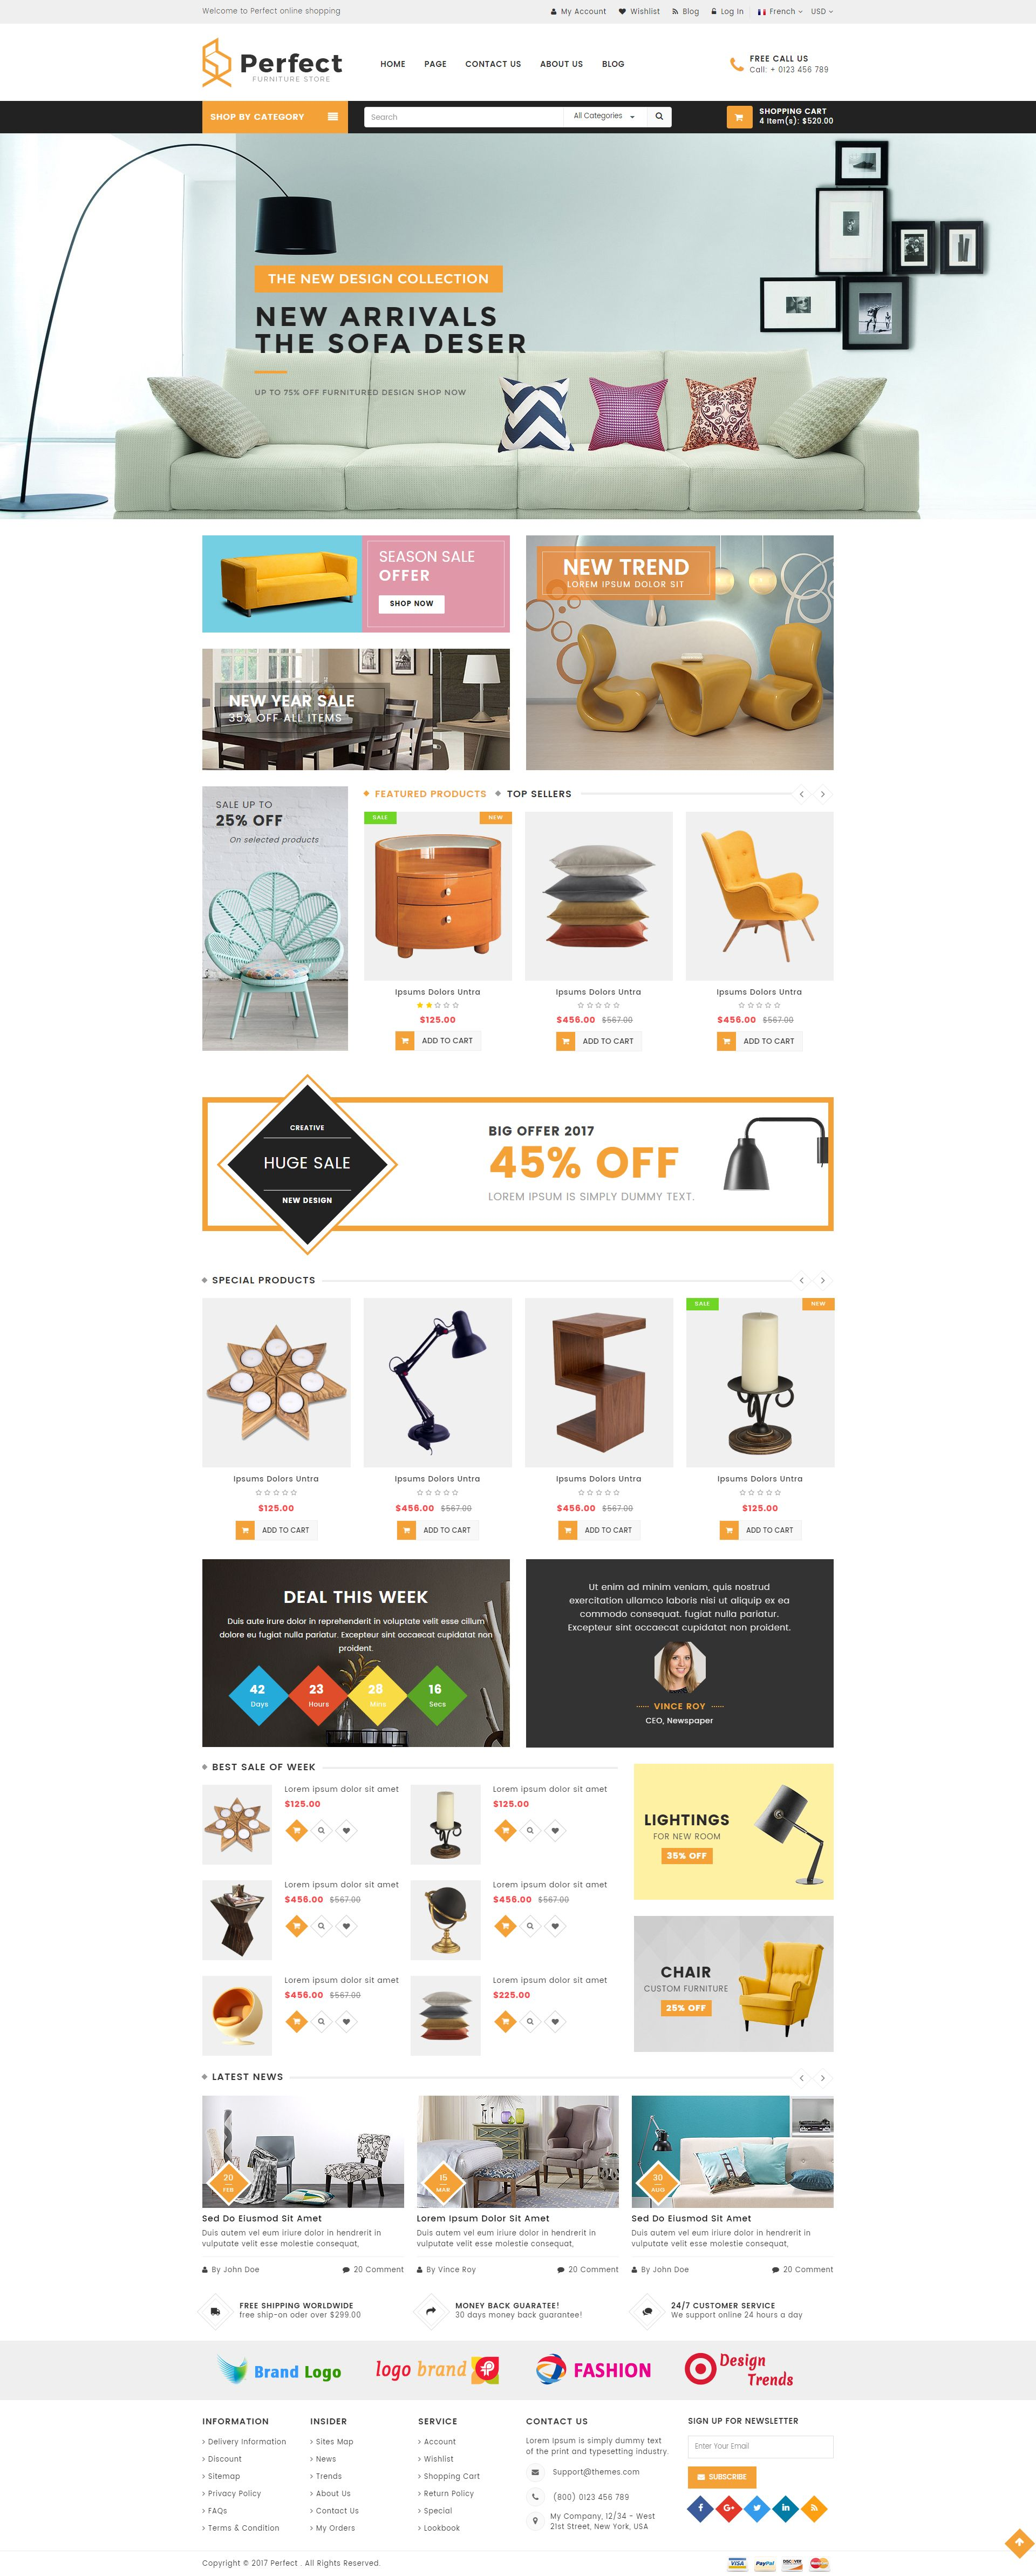 Perfect - Responsive Ecommerce HTML5 Template Screenshot 1